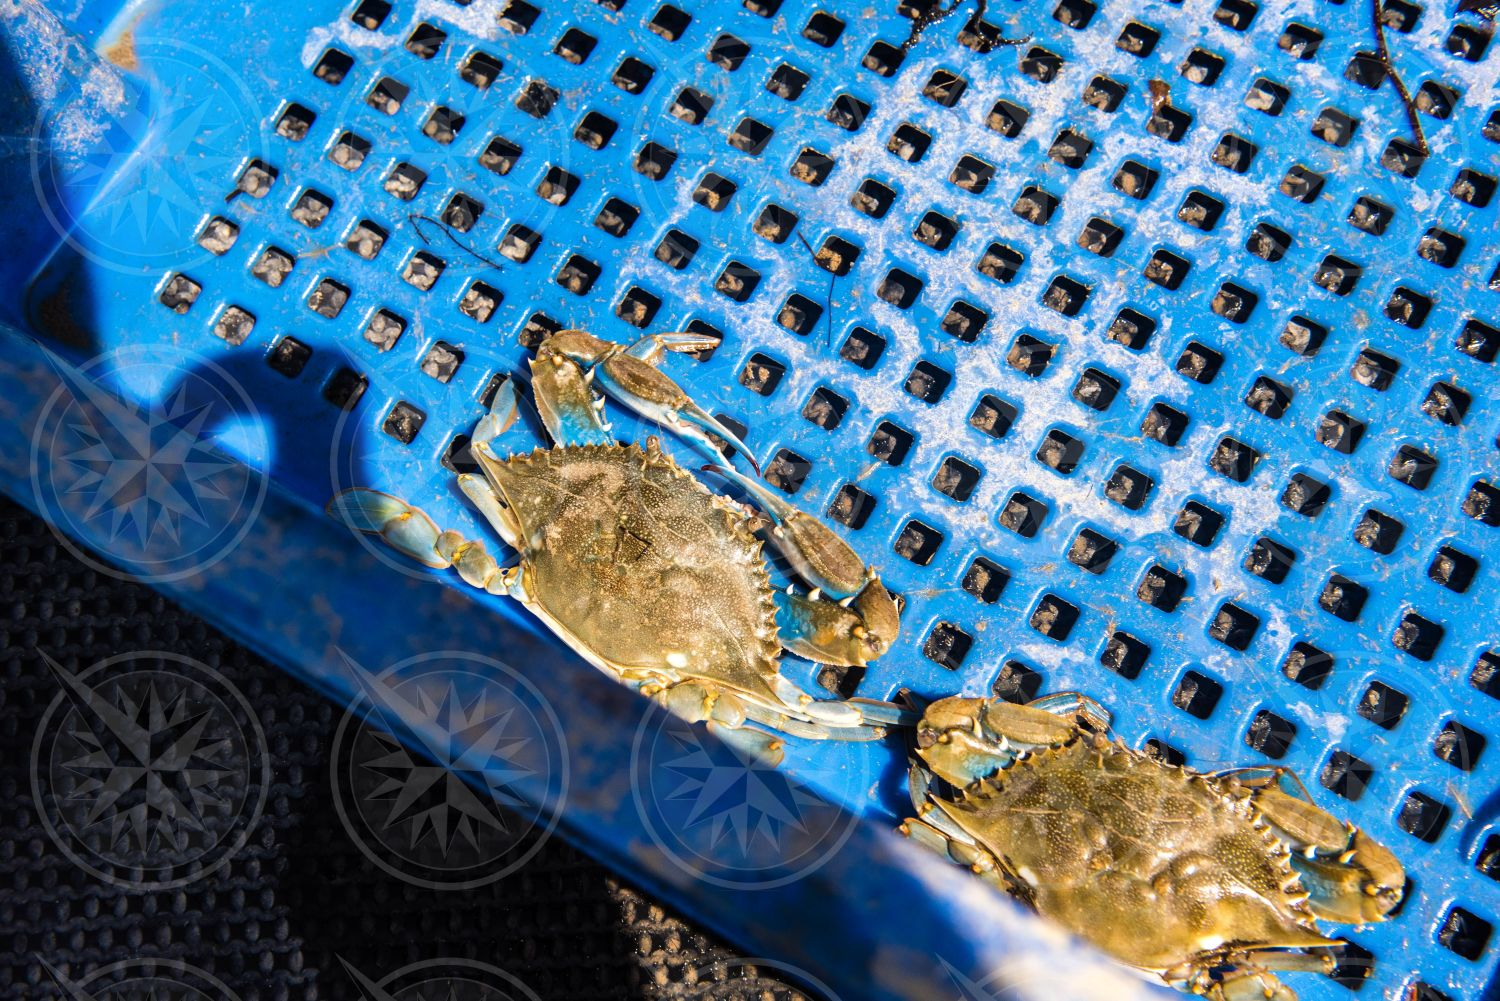 Crabs in a blue container